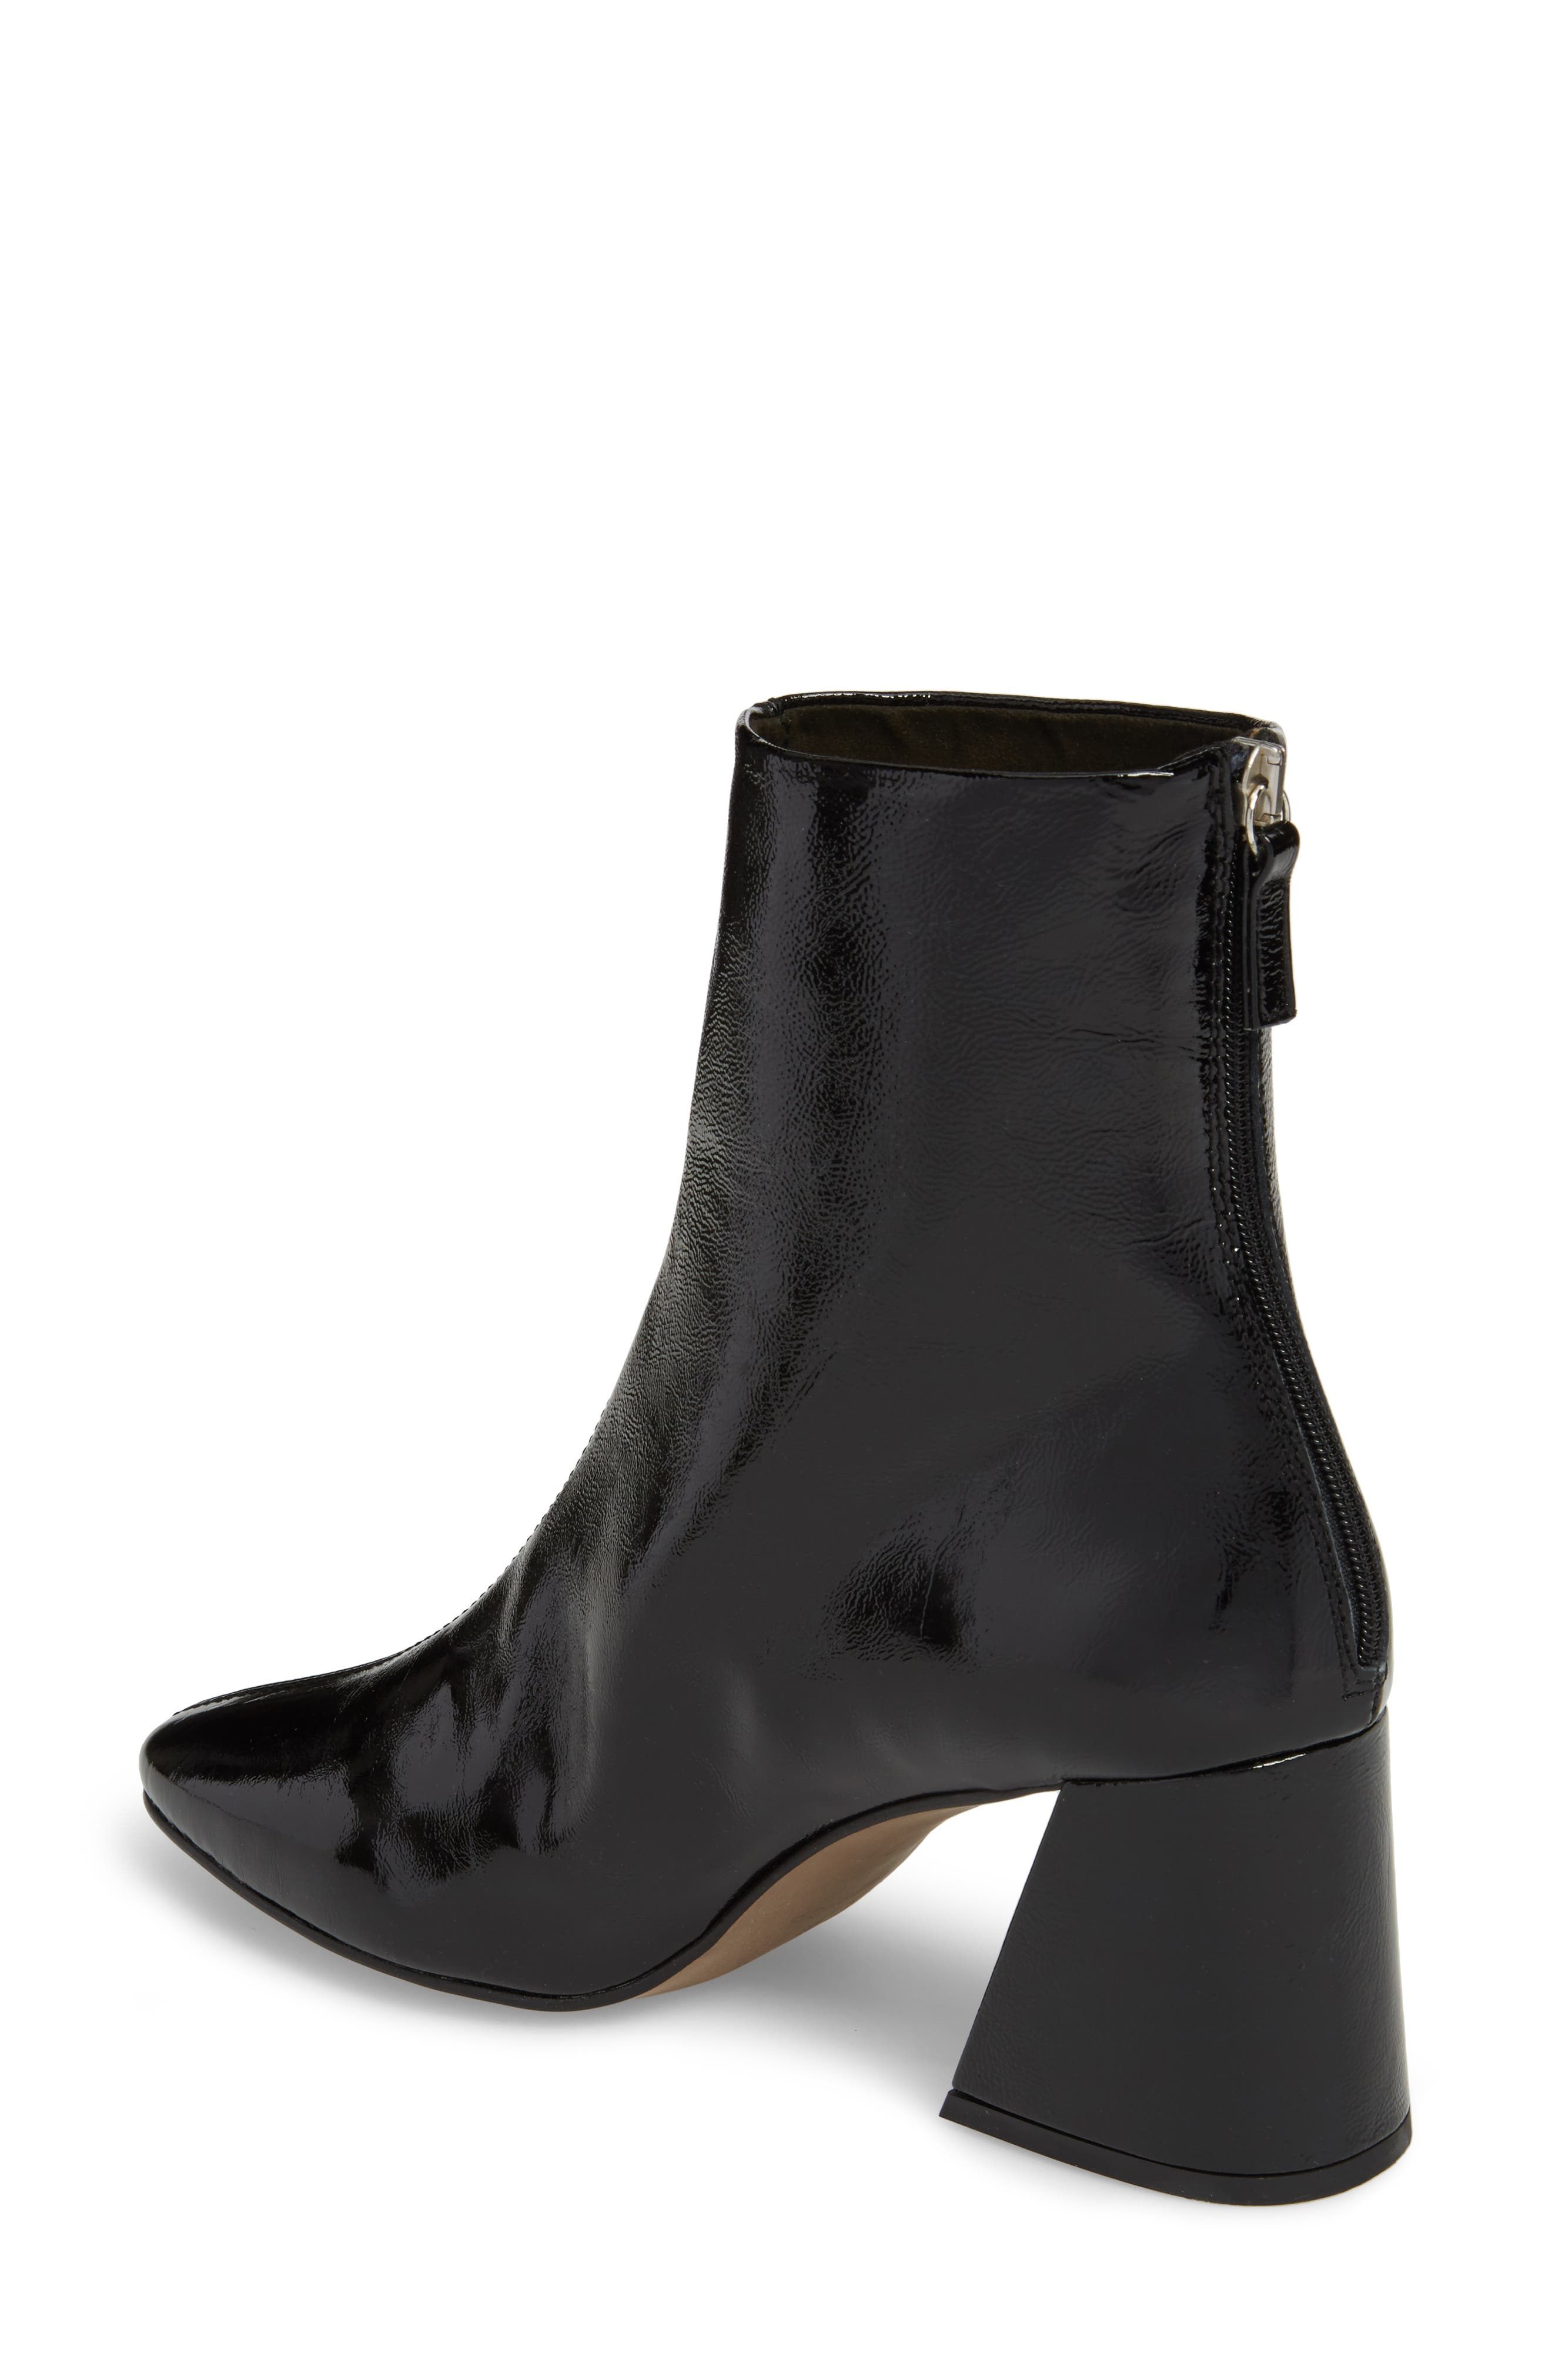 Mighty Flared Heel Bootie,                             Alternate thumbnail 2, color,                             Black